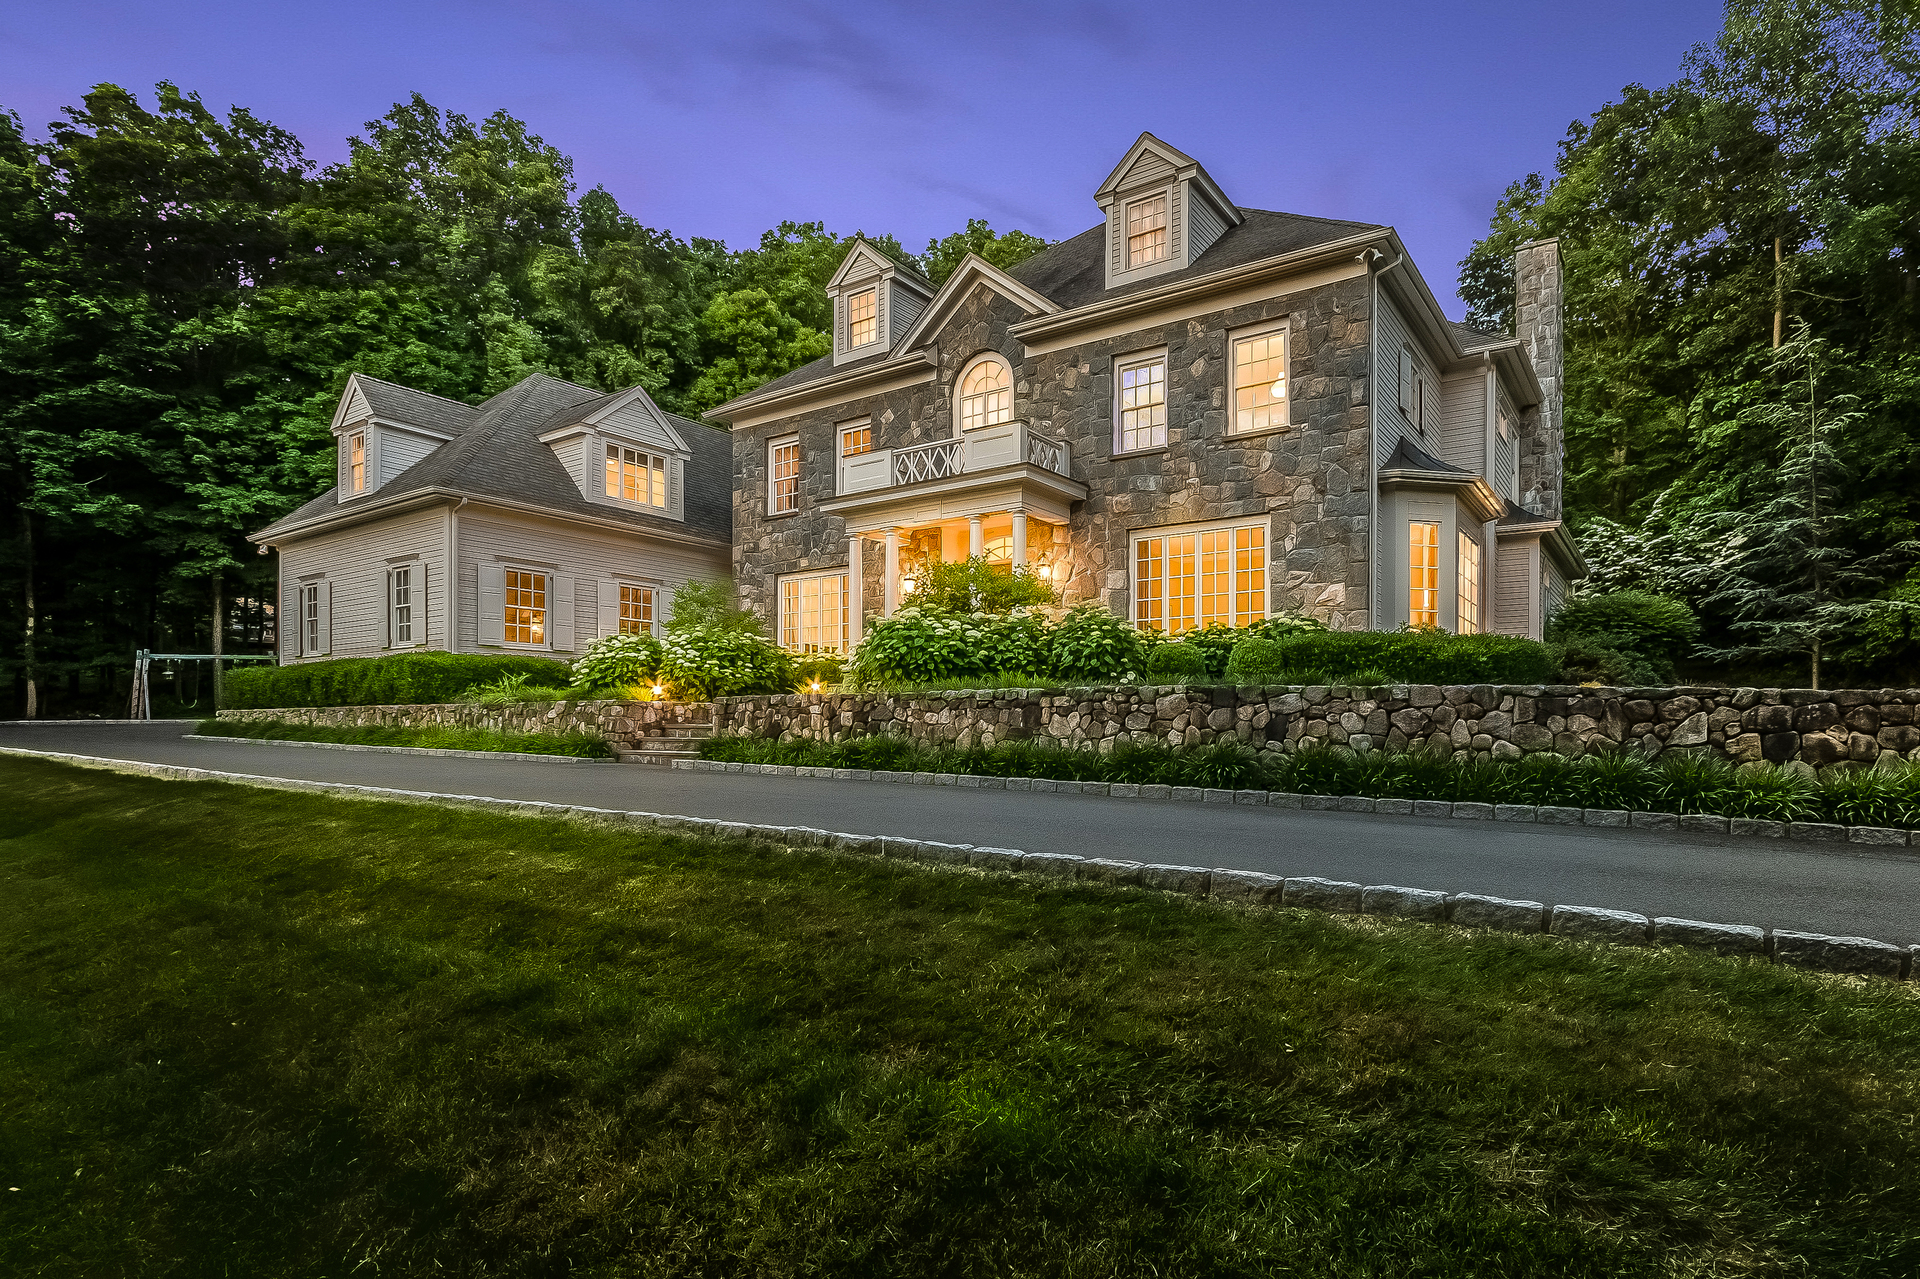 Single Family Home for Sale at Sophisticated, Private and Serene 28 Pheasant Hill Road Weston, Connecticut, 06883 United States